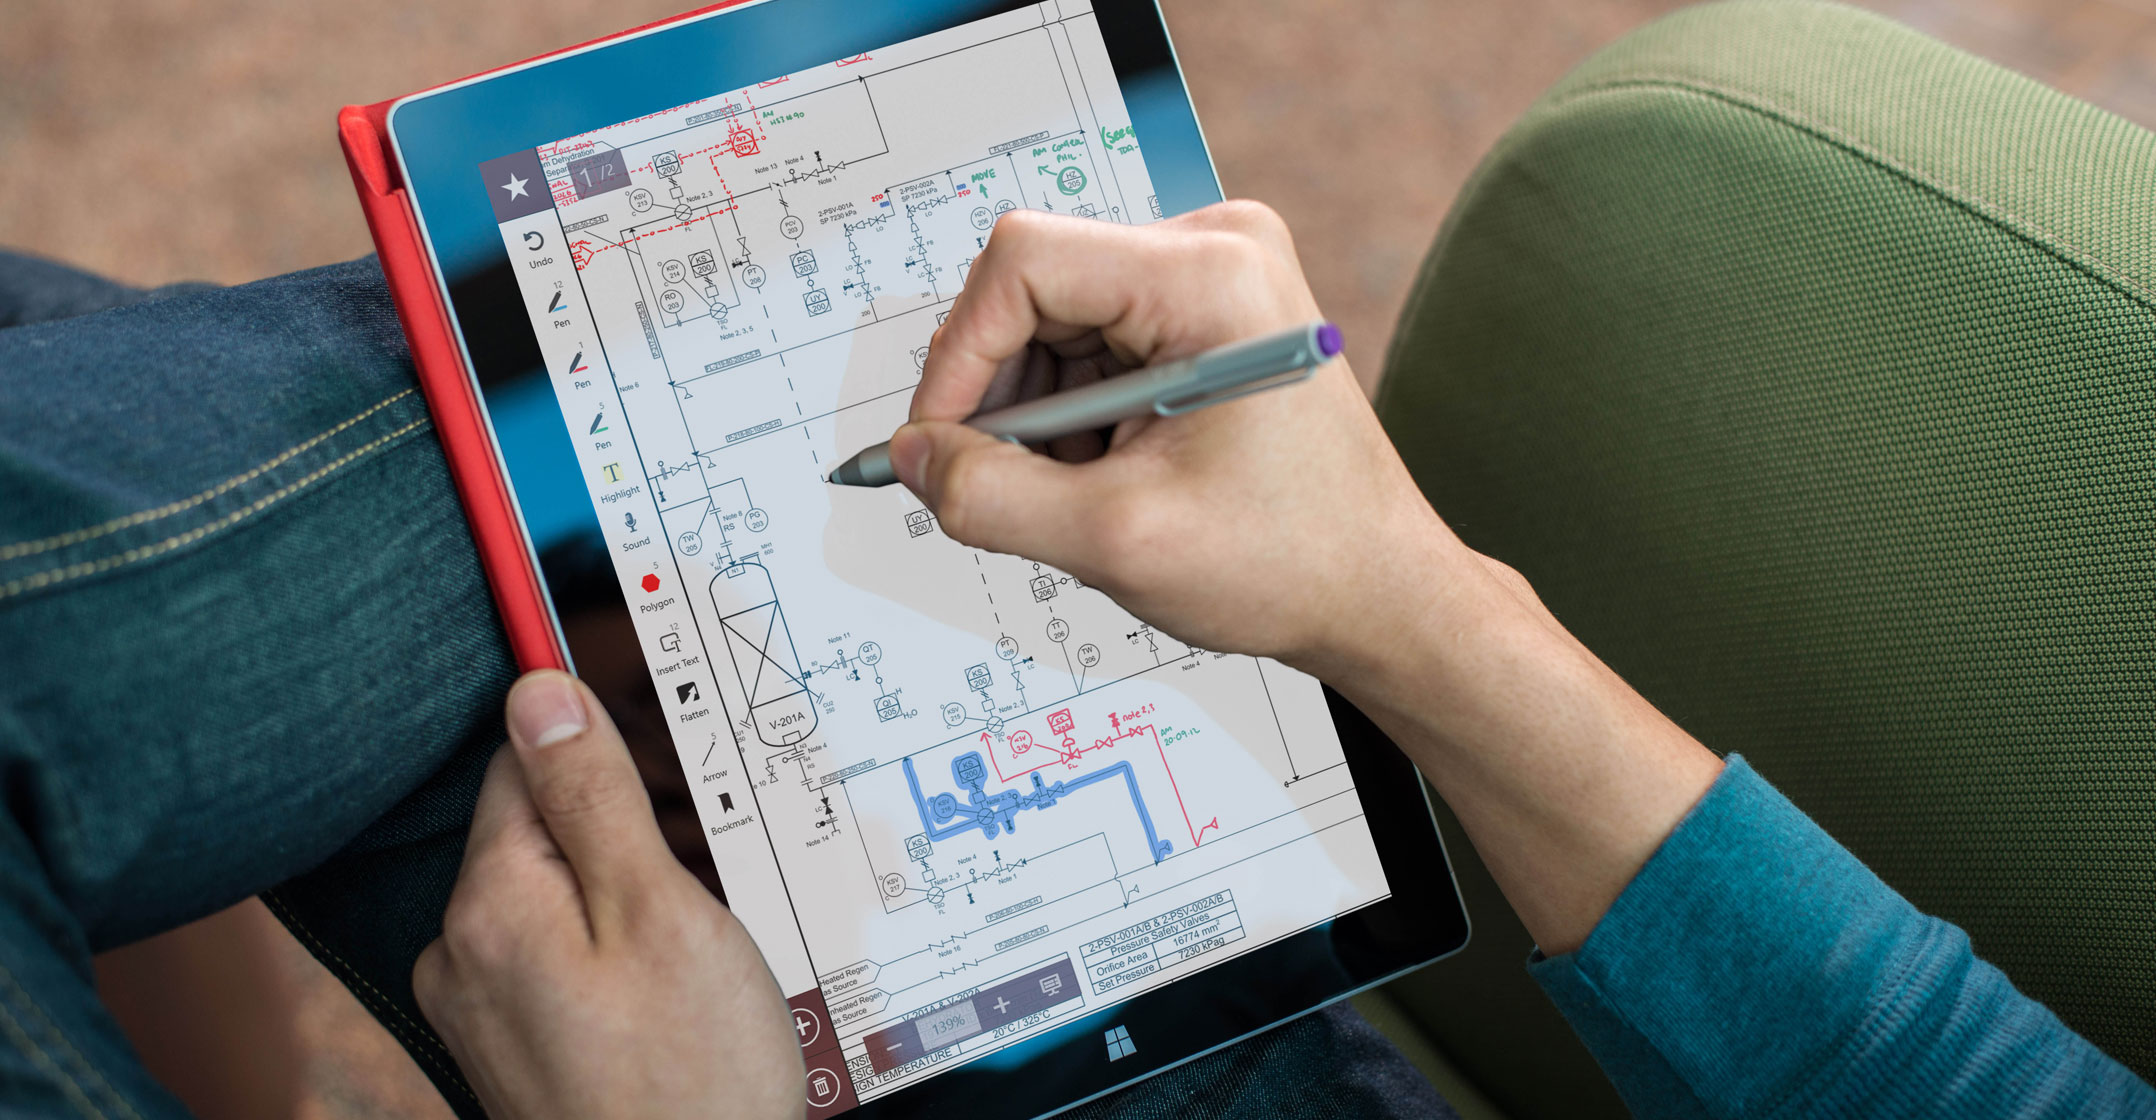 Microsoft plans lower-cost Surface tablets to battle Apple